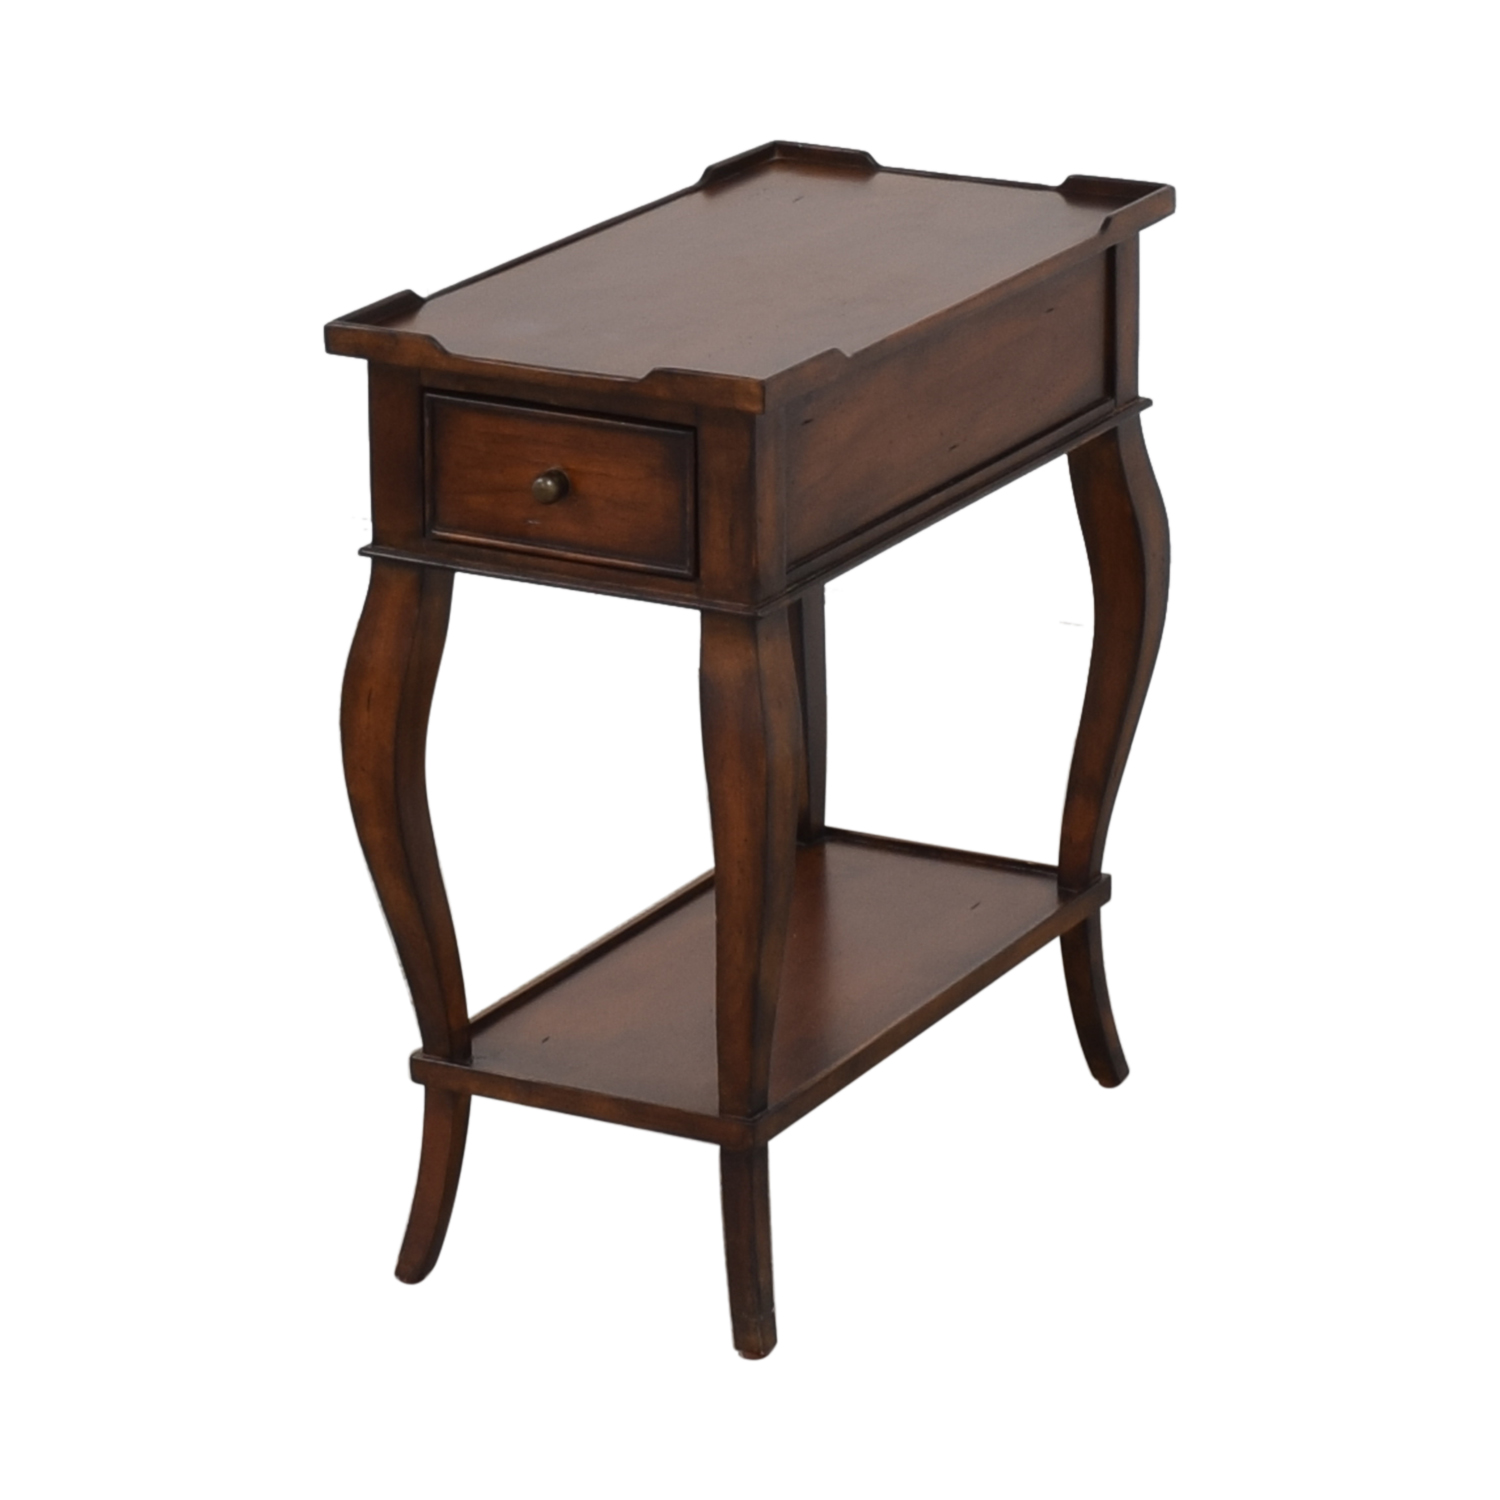 Ethan Allen Ethan Allen Solid Wood Side Accent Table on sale